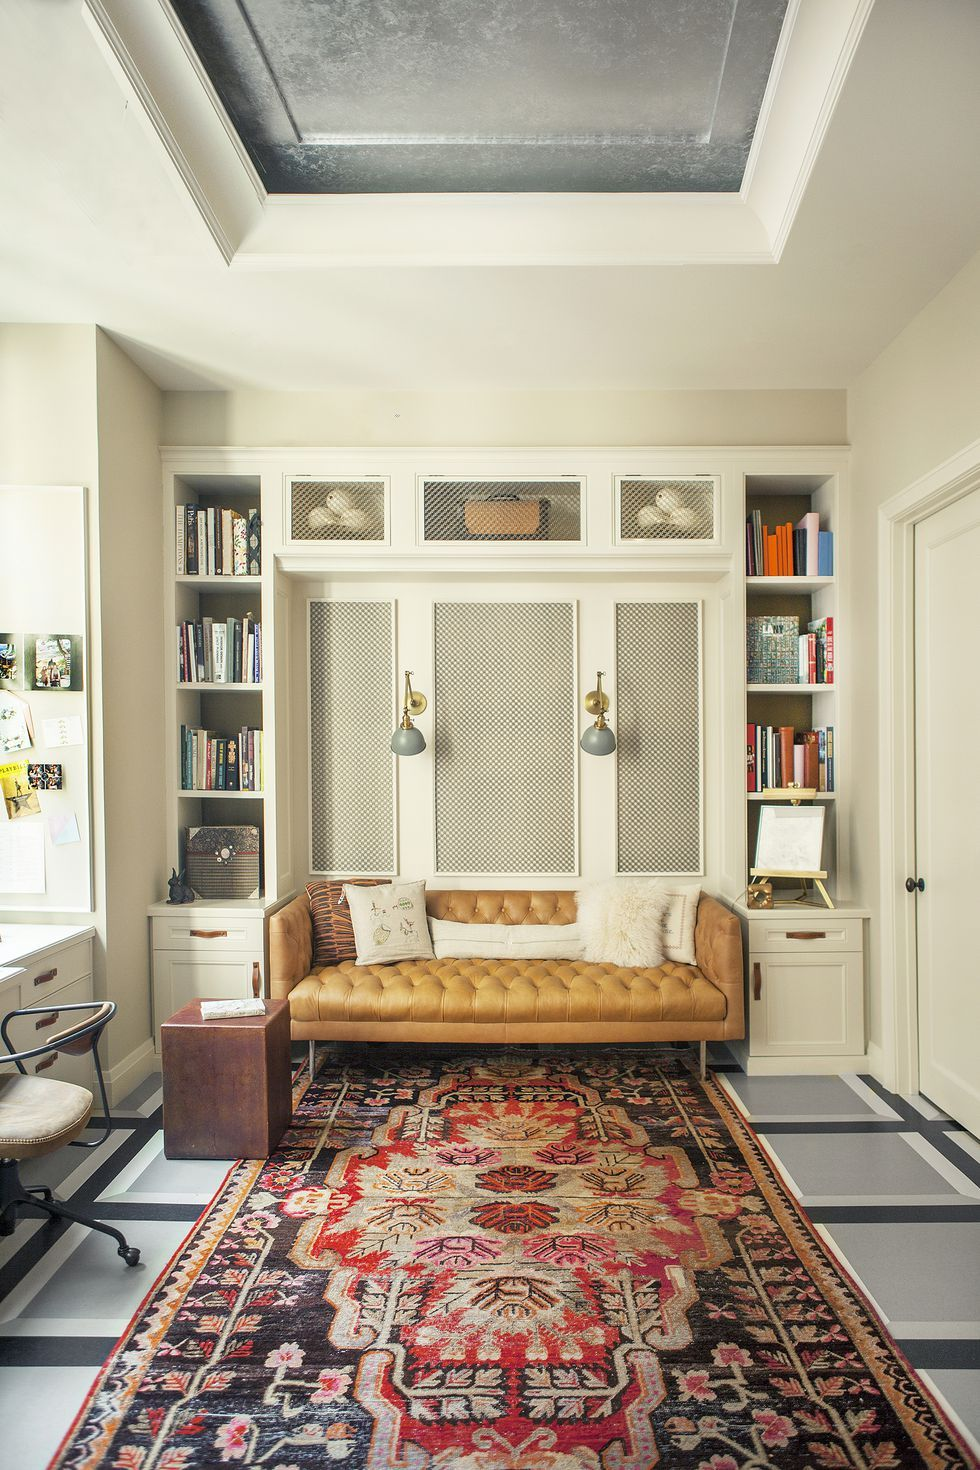 A spacious tribeca home office is cozied up with a rug find this pin and more on office decor ideas by elle